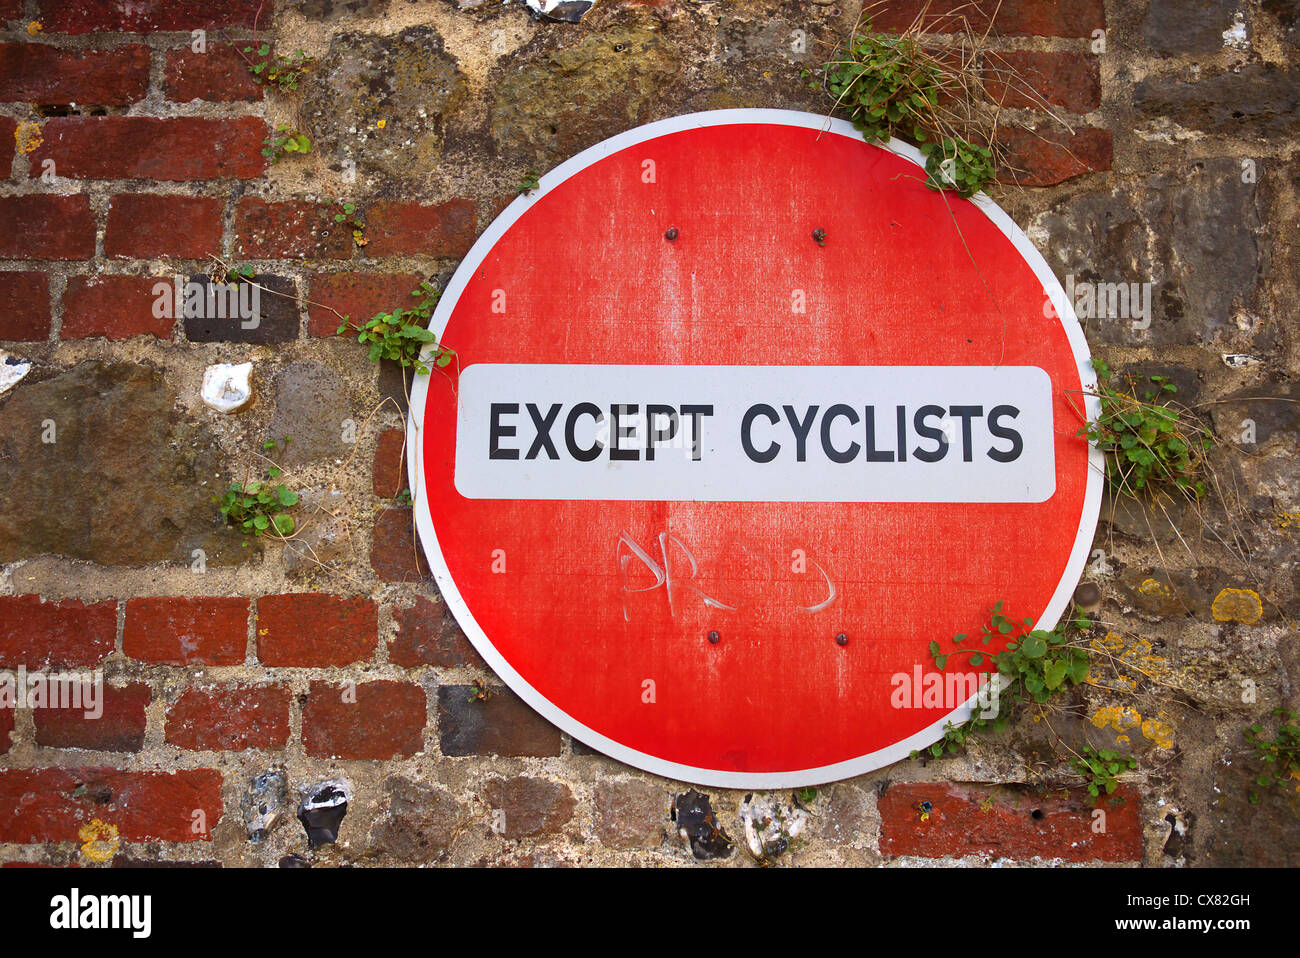 No entry except cyclists sign. - Stock Image